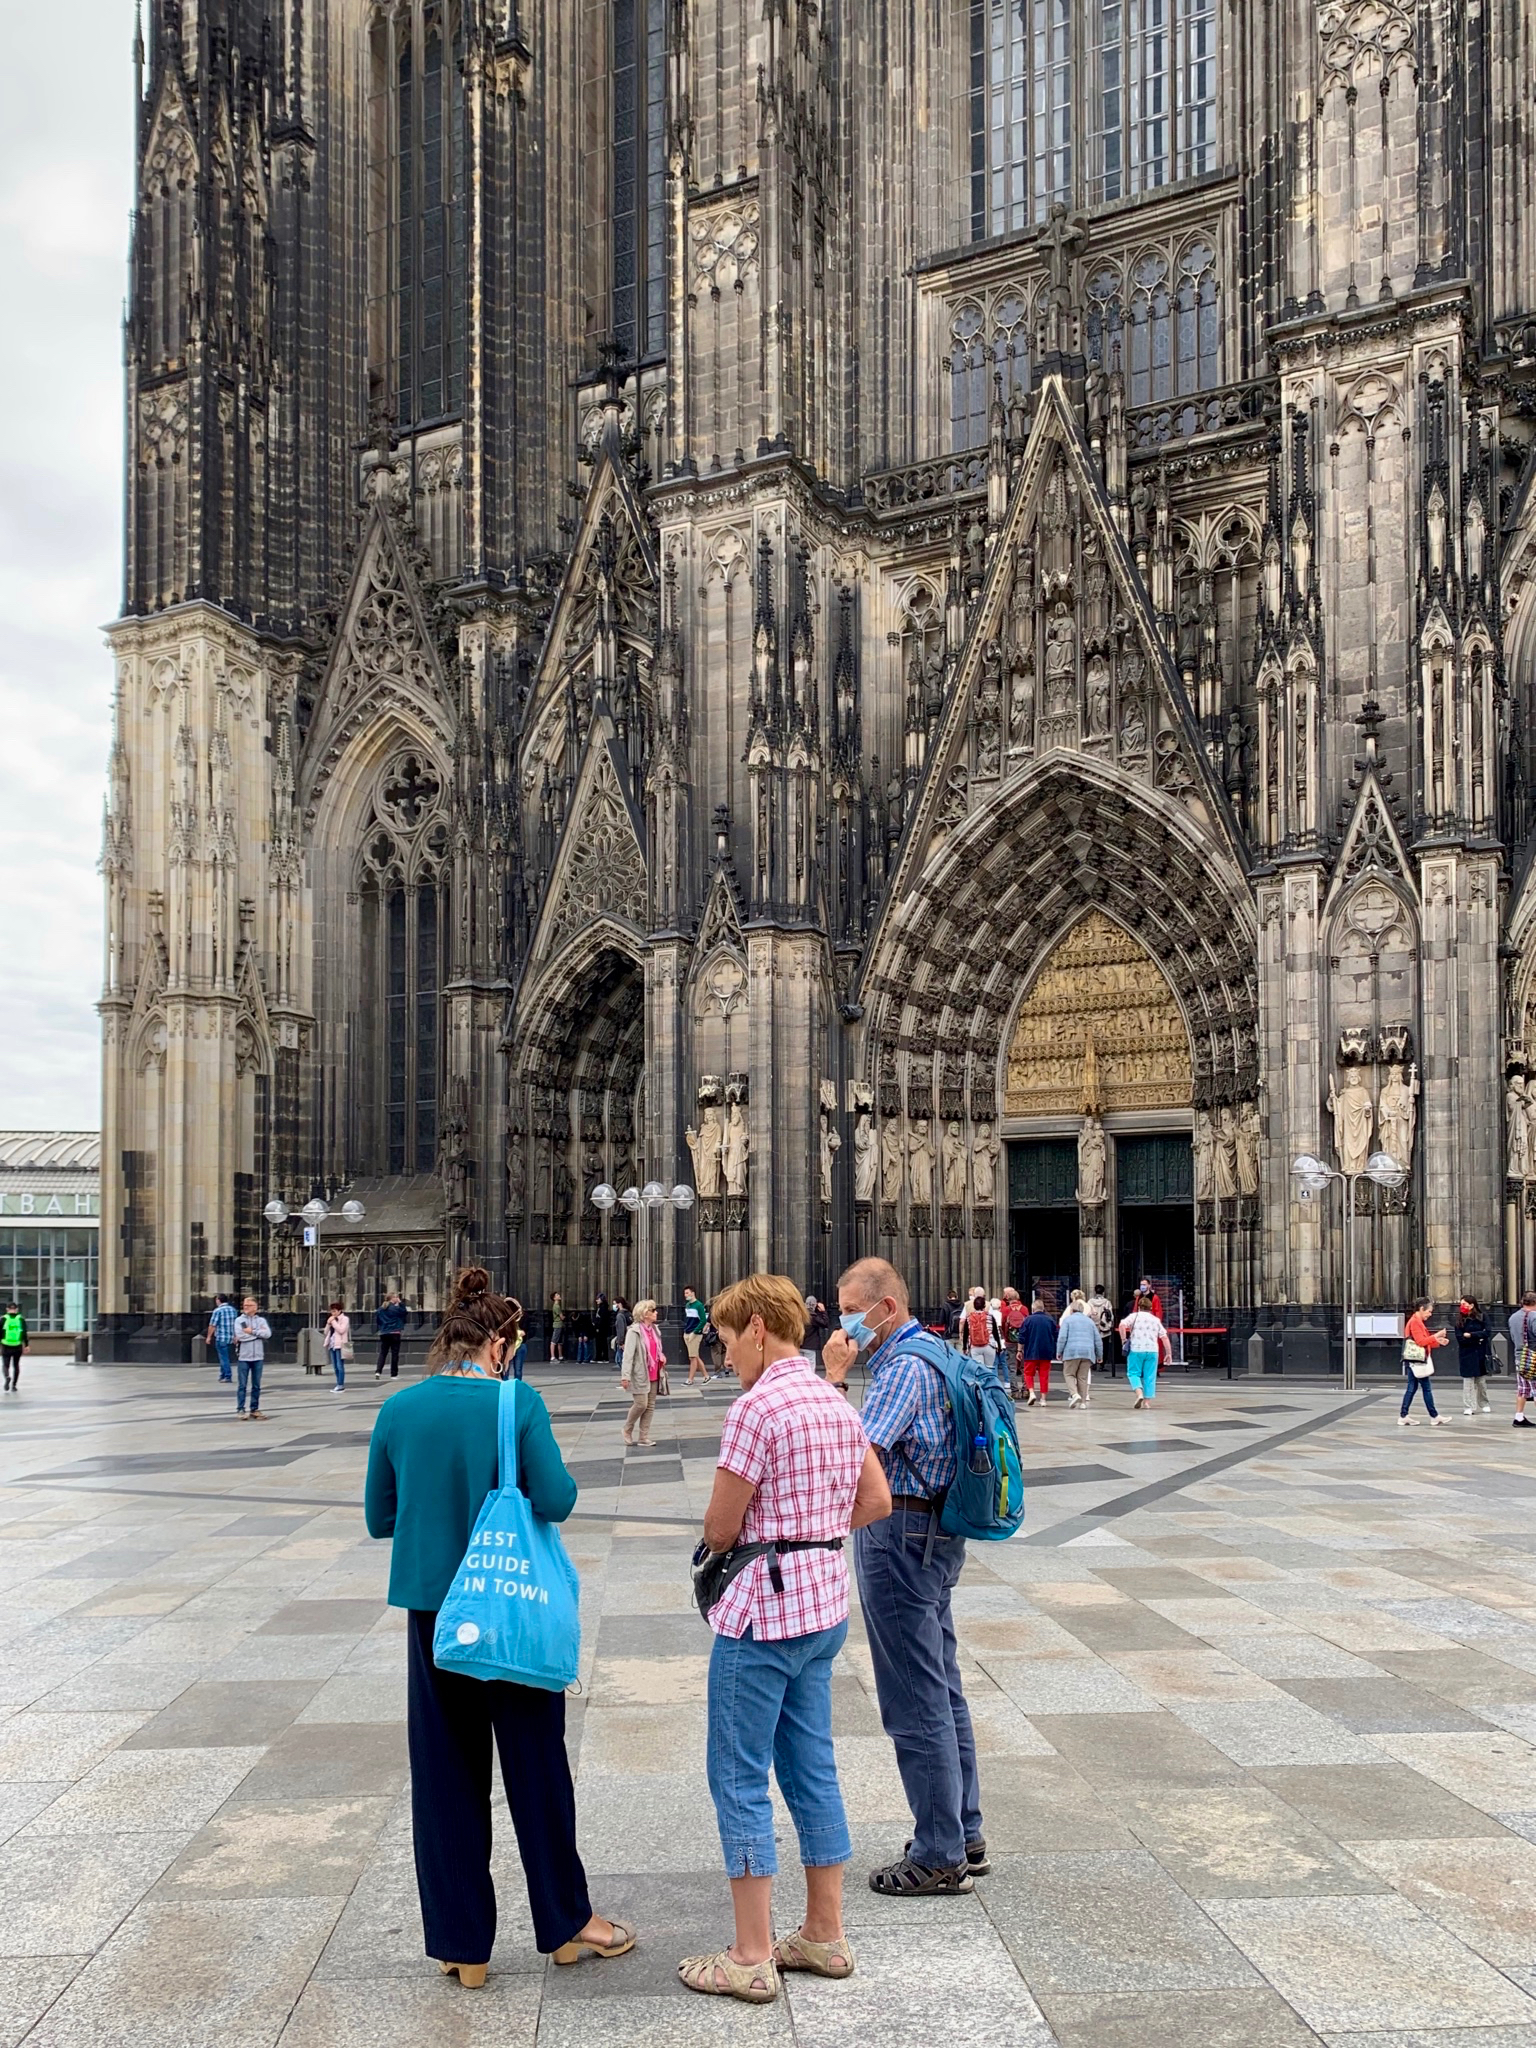 Two walking tour group members ask some questions of their guide outside the Cologne Cathedral